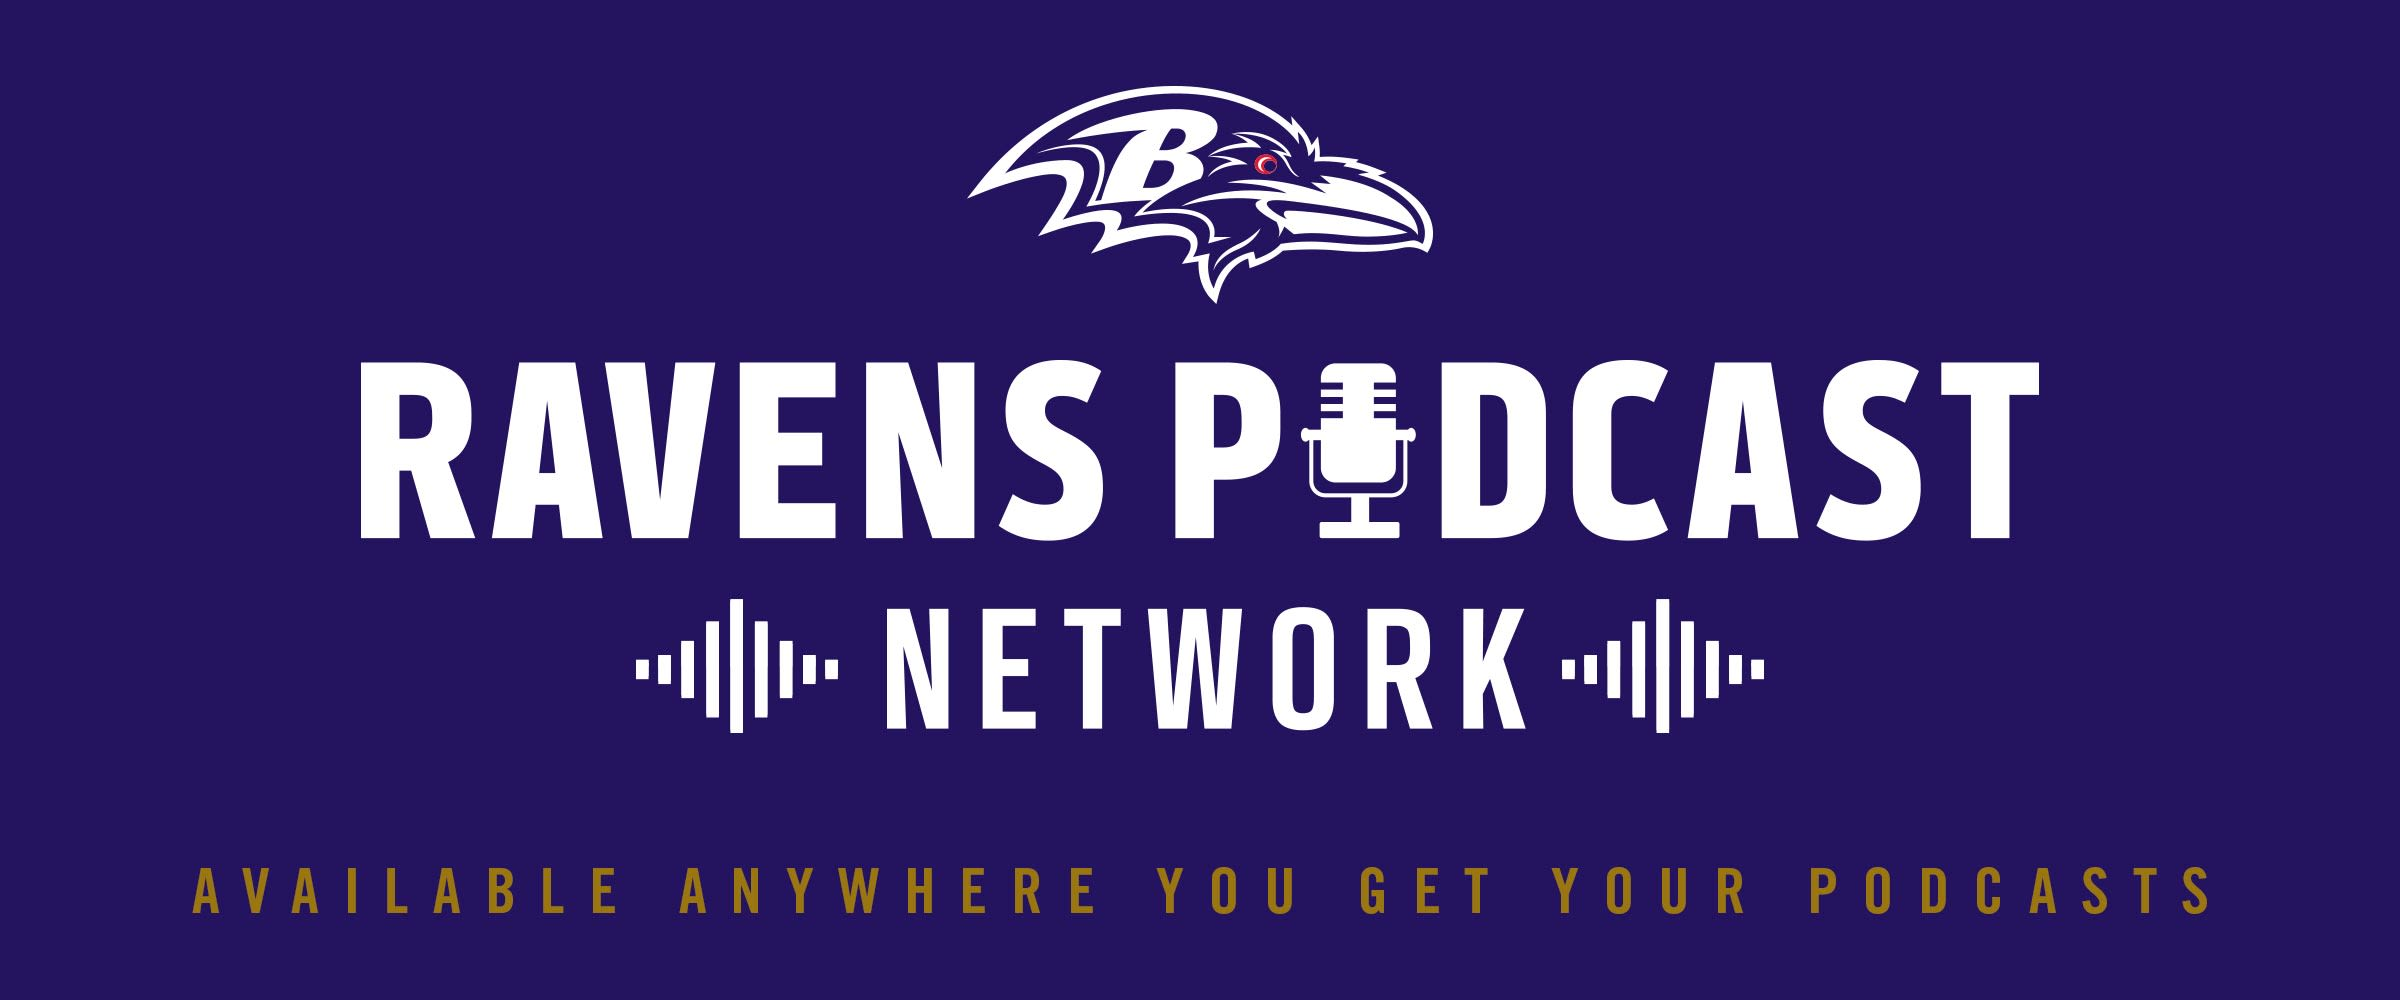 Ravens Podcast Network  Available anywhere you get your podcasts